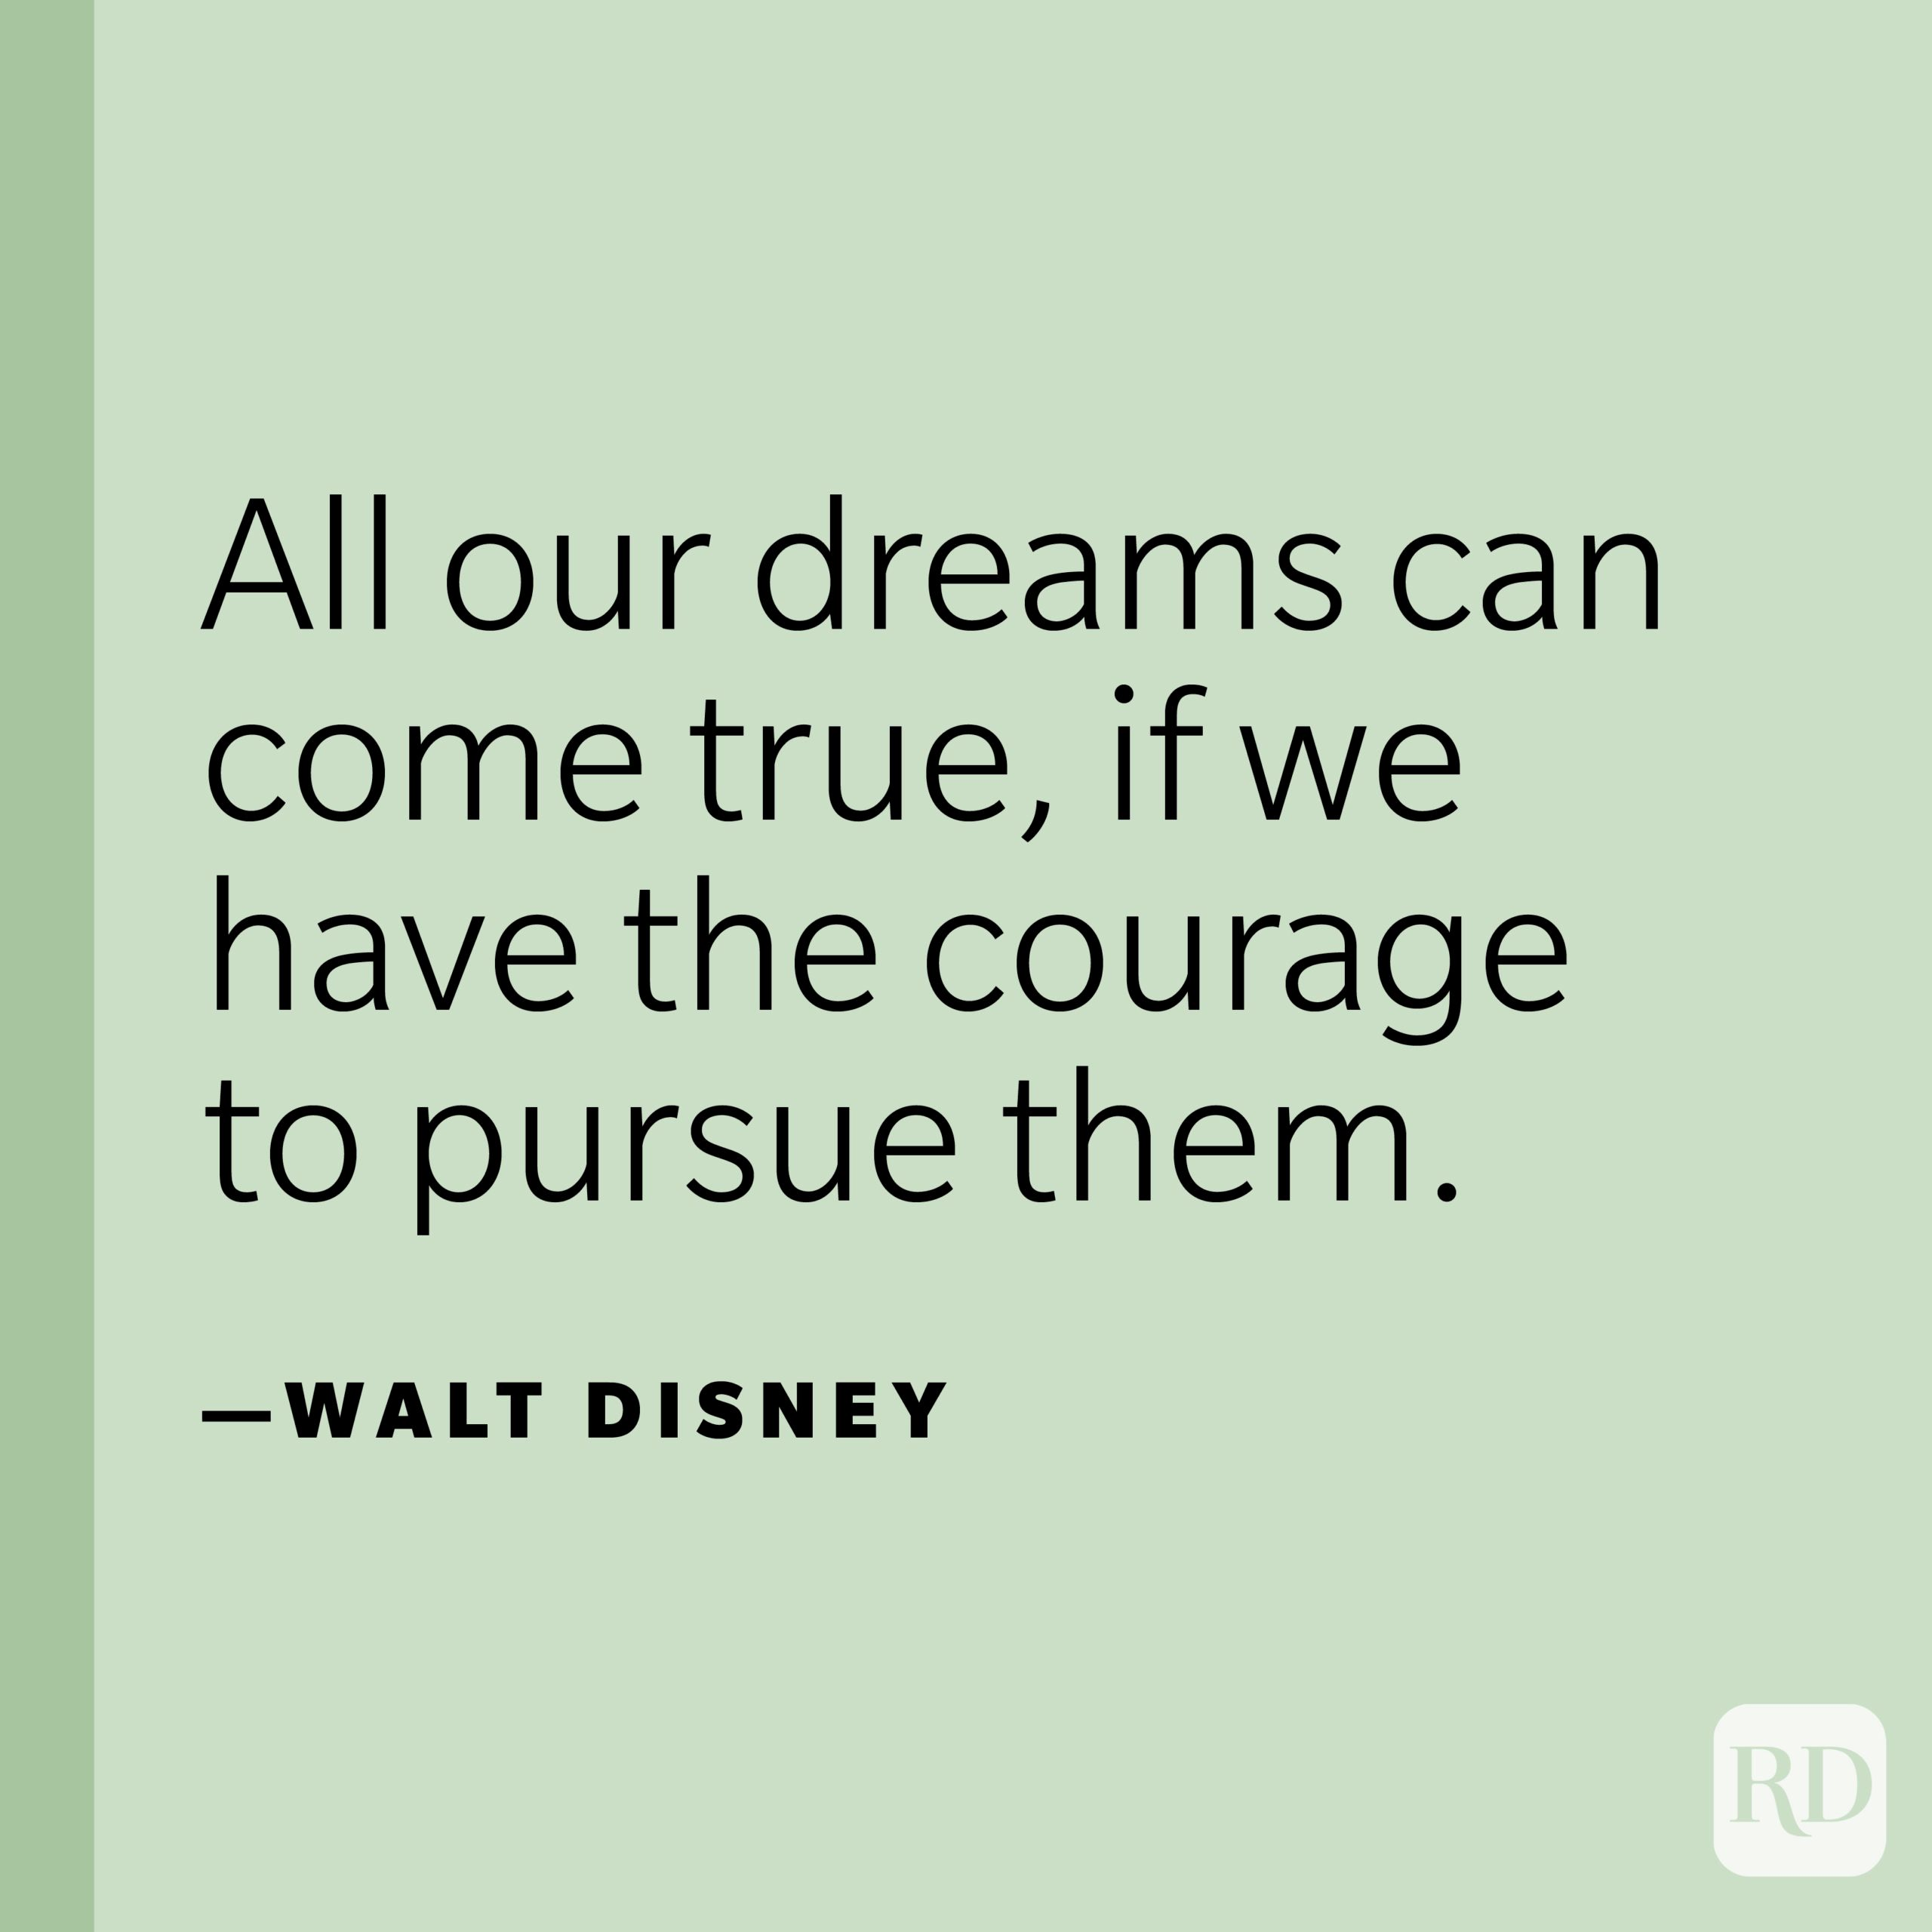 """""""All our dreams can come true, if we have the courage to pursue them.""""—Walt Disney"""